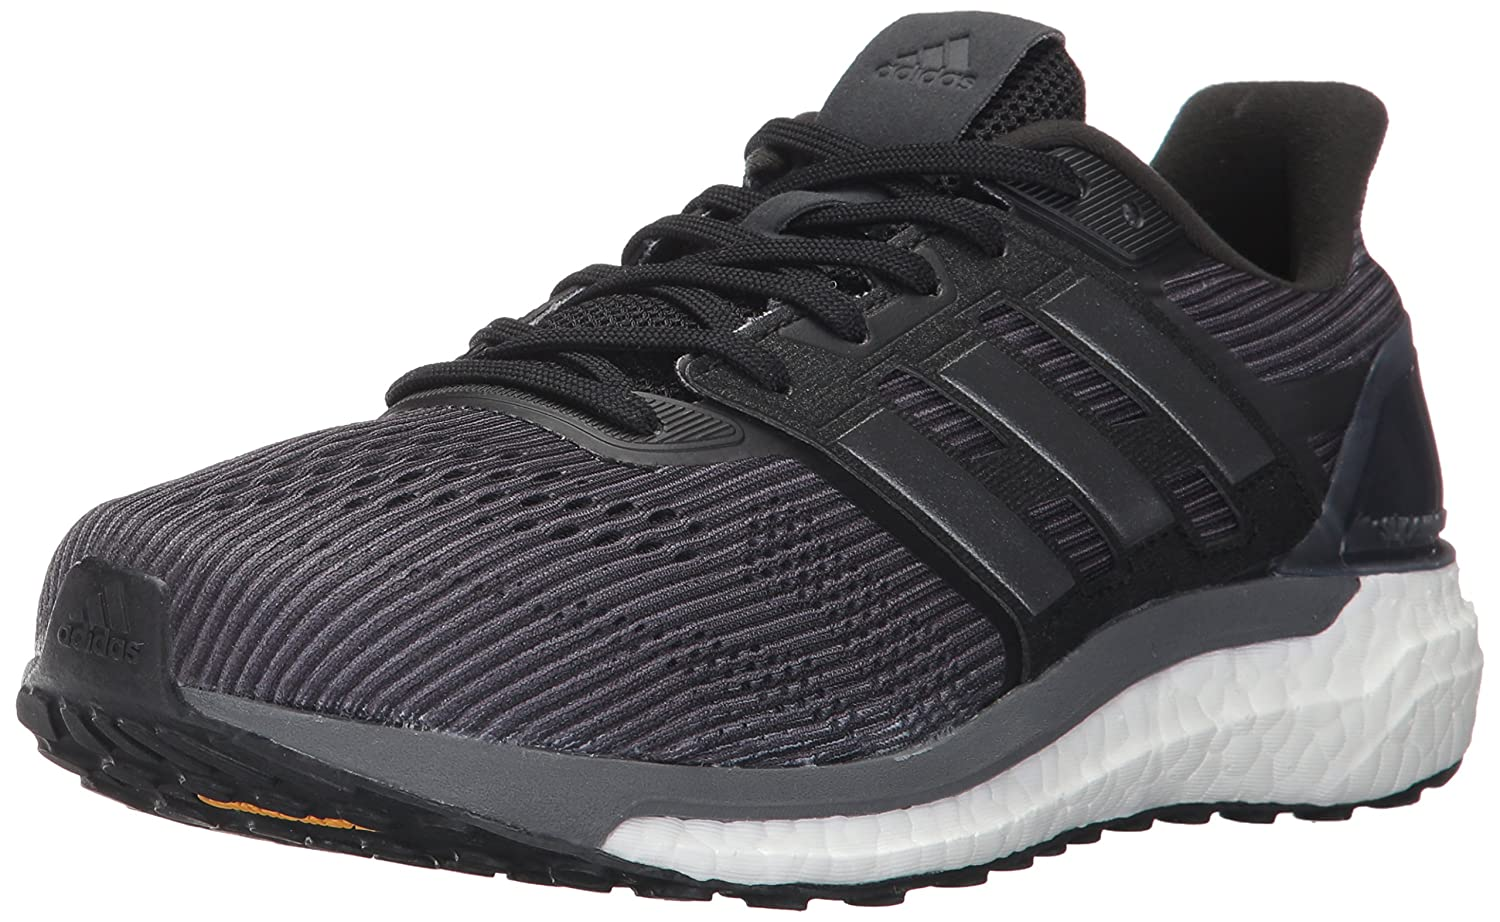 adidas Women's Supernova W Running Shoe B01N5G0MP6 6 B(M) US|Grey Five/Night Metallic/Black